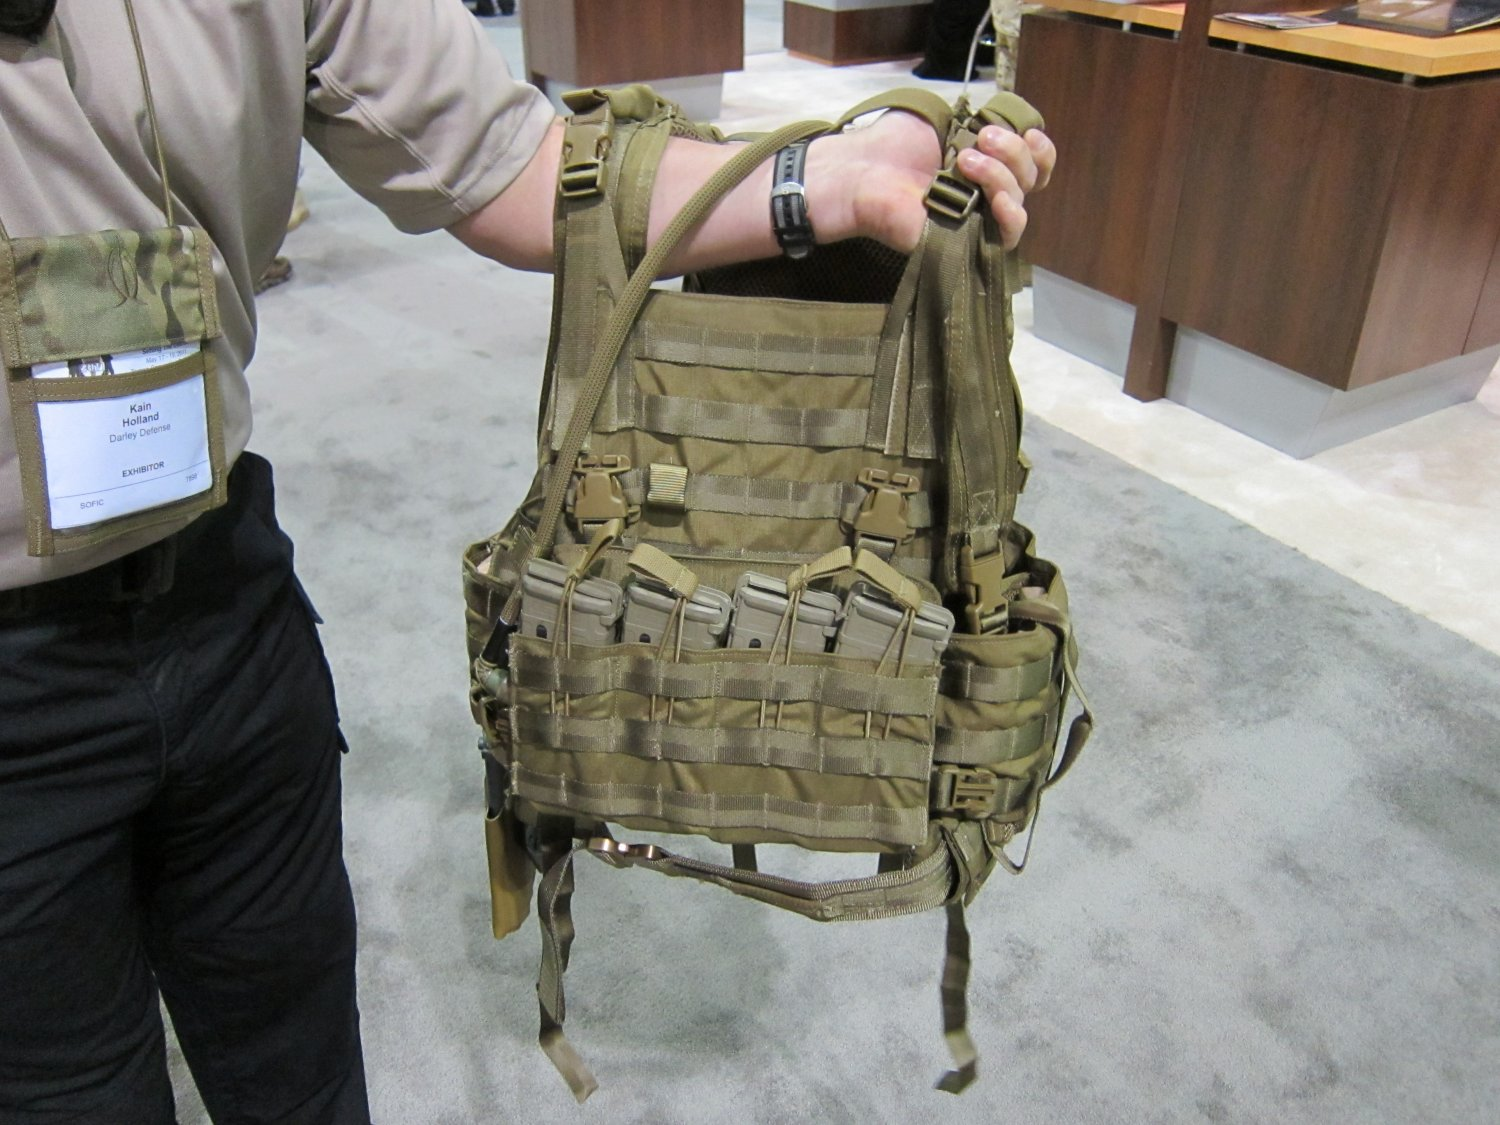 Archangel_Armor_Internal_Frame_Load-Bearing_System_(IFLBS)_Version_5_Tactical_Armor_Plate_Carrier_System_SOFIC_2011_4